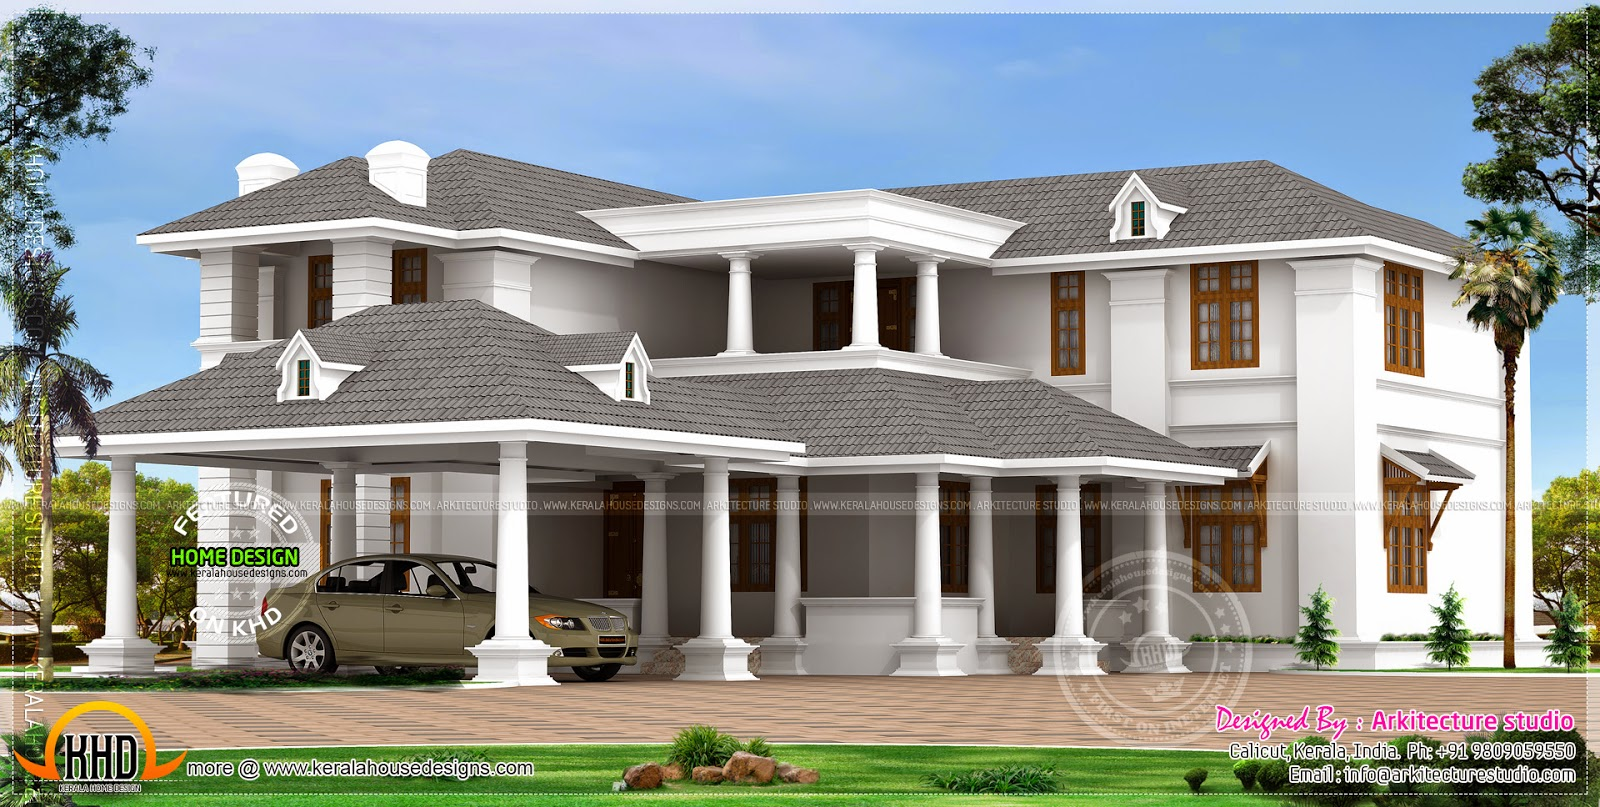 Big luxury home design kerala home design and floor plans for Large home plans